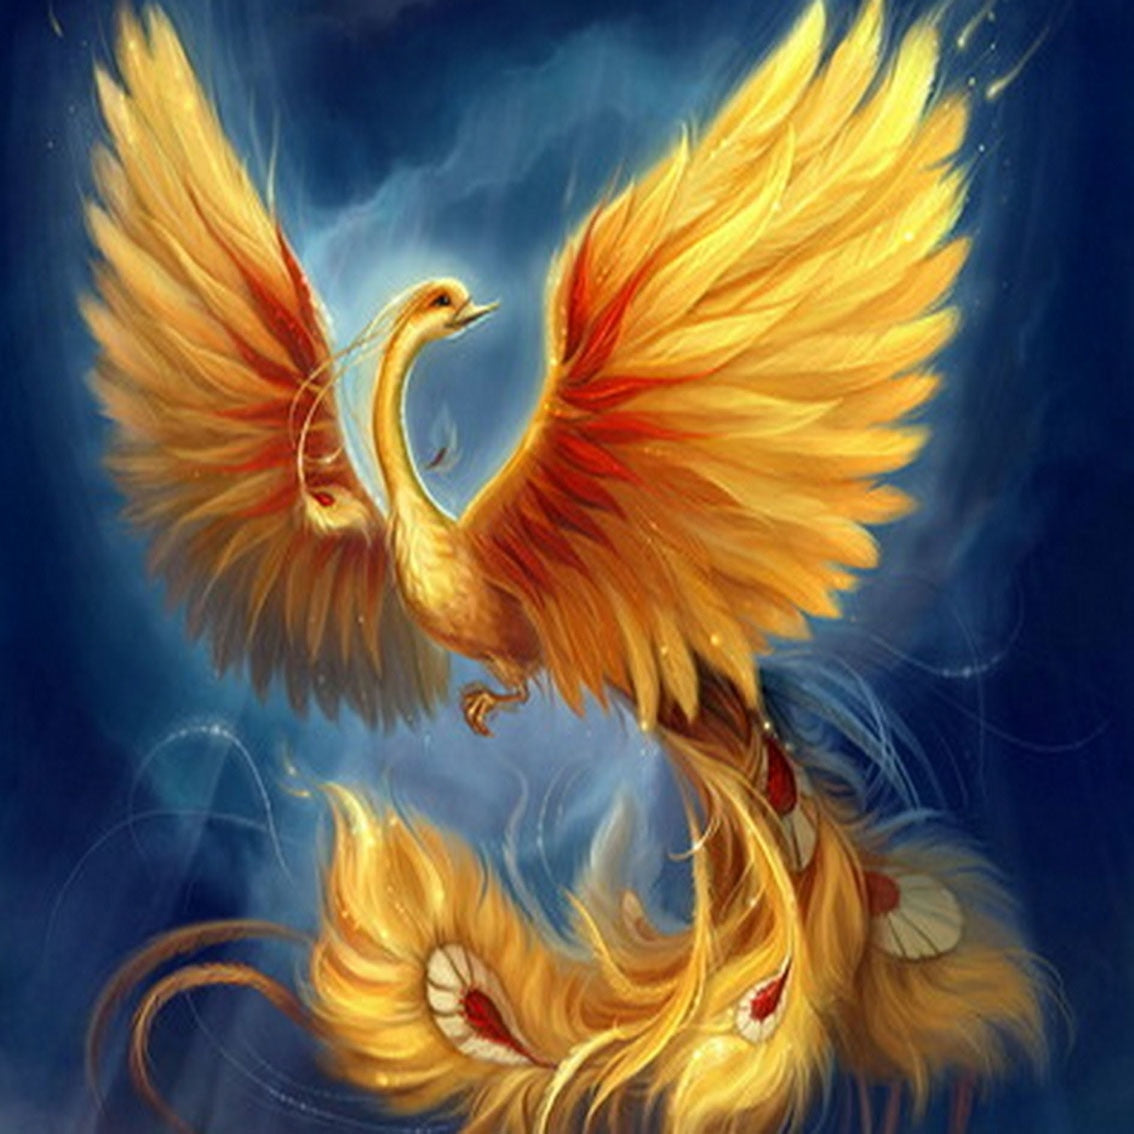 Golden Phoenix - Diamond Painting Kit